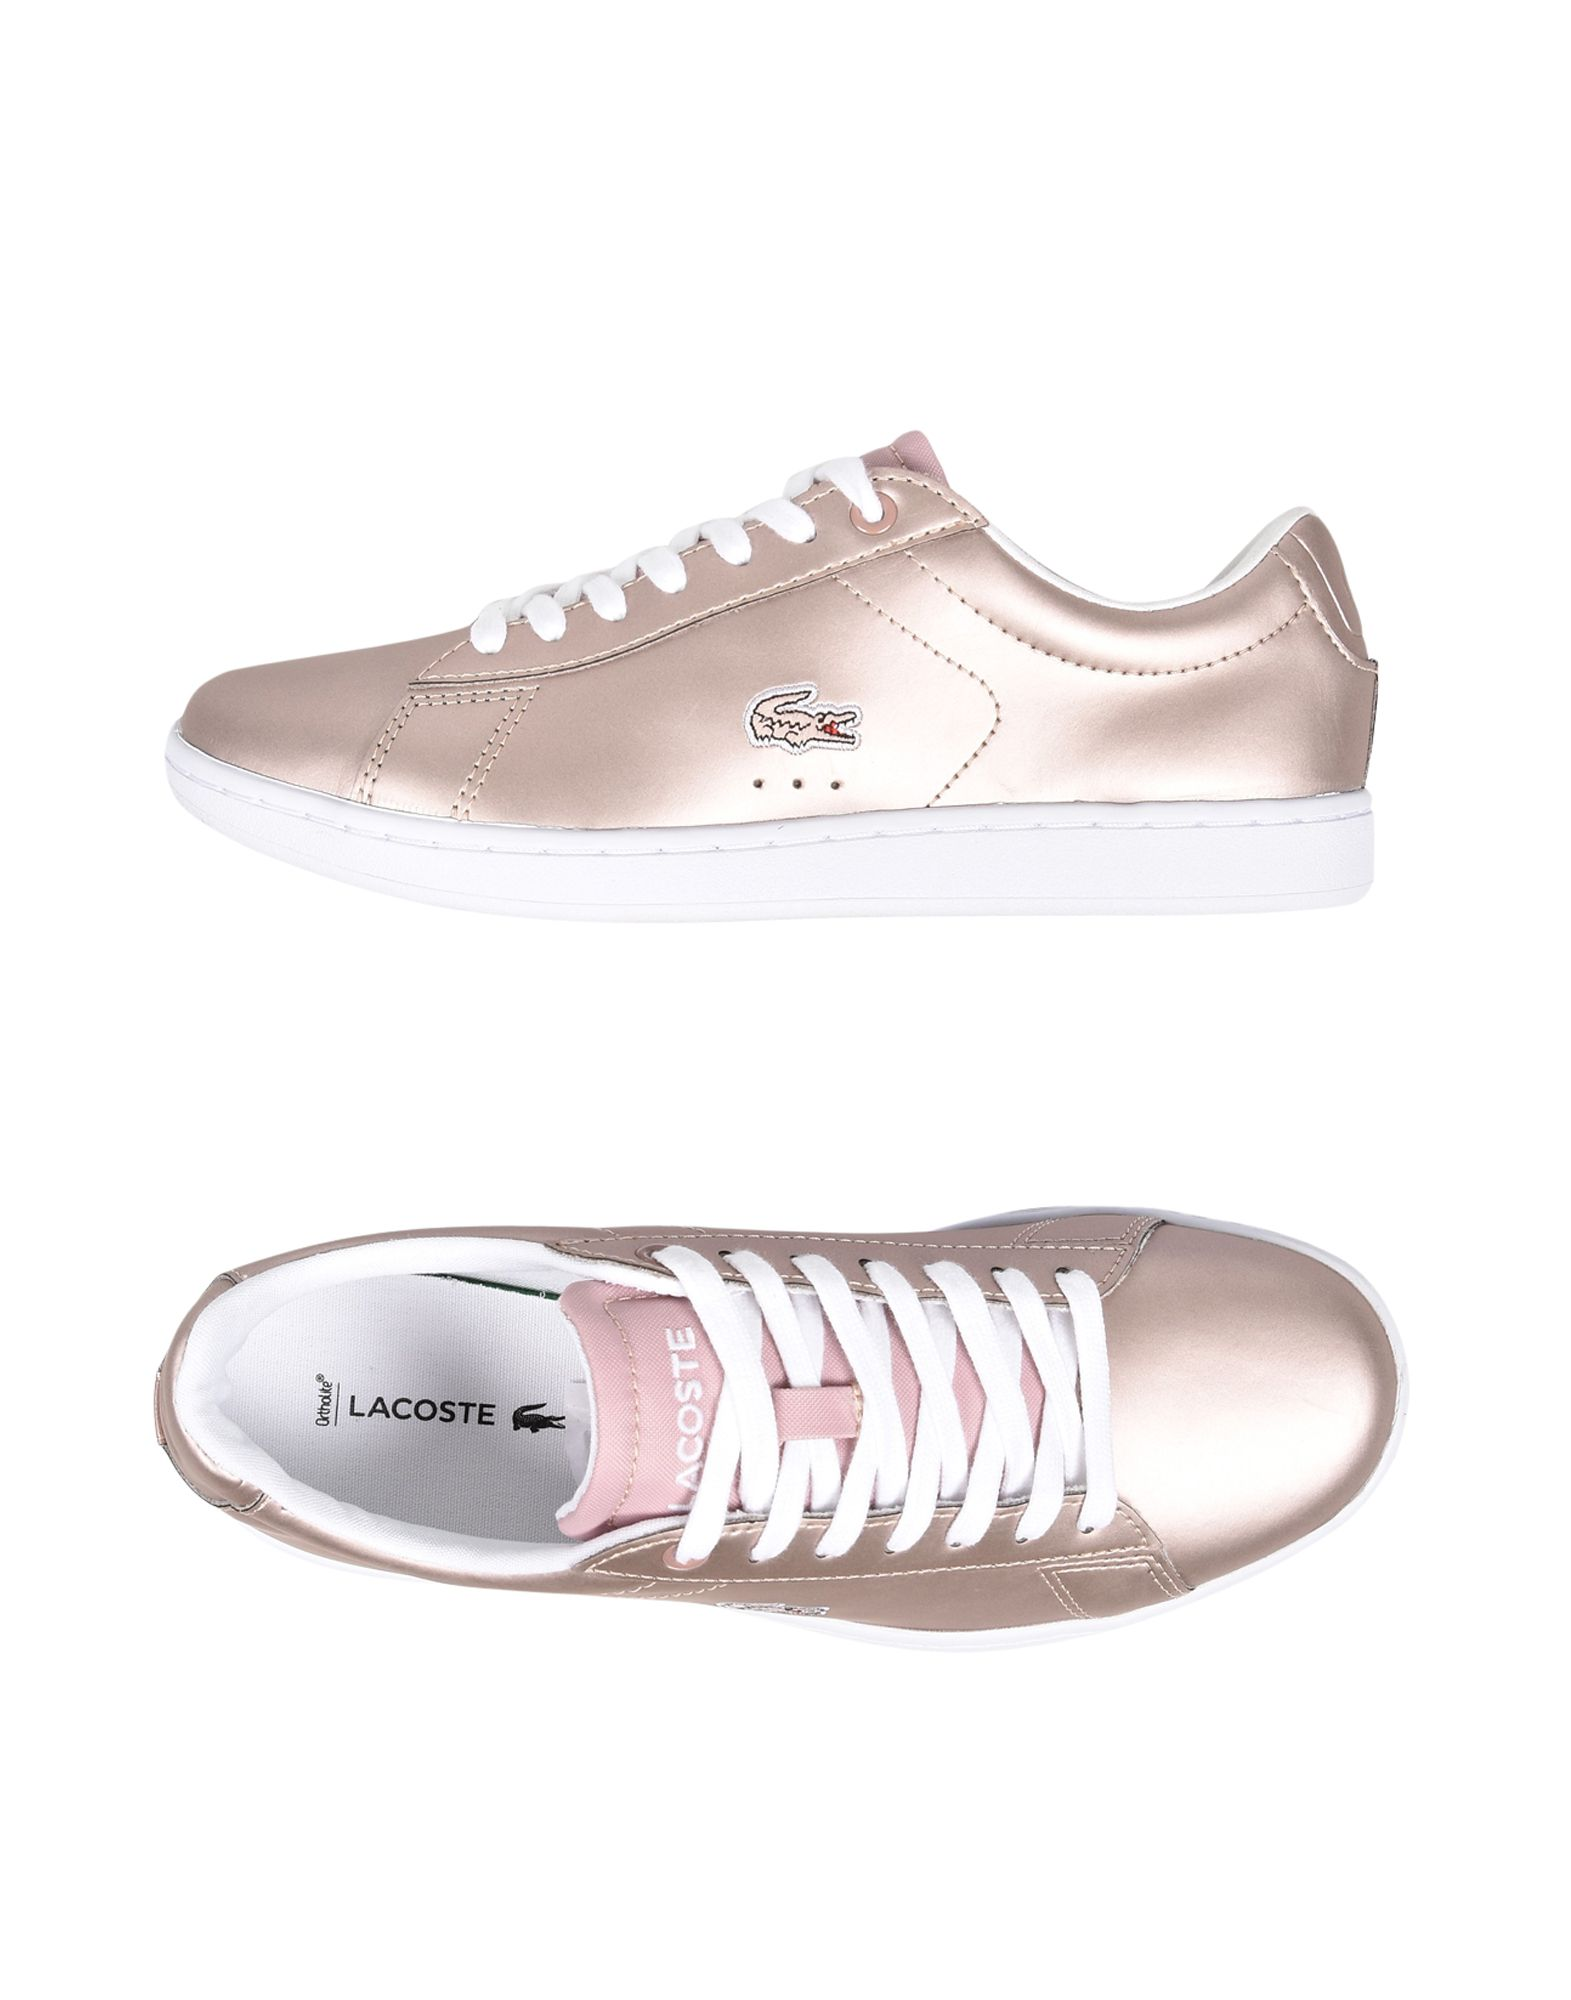 Lacoste Carnaby Evo 117 3 - Sneakers - Women Lacoste Sneakers online on  YOOX United States - 11211067AS 8127336071e